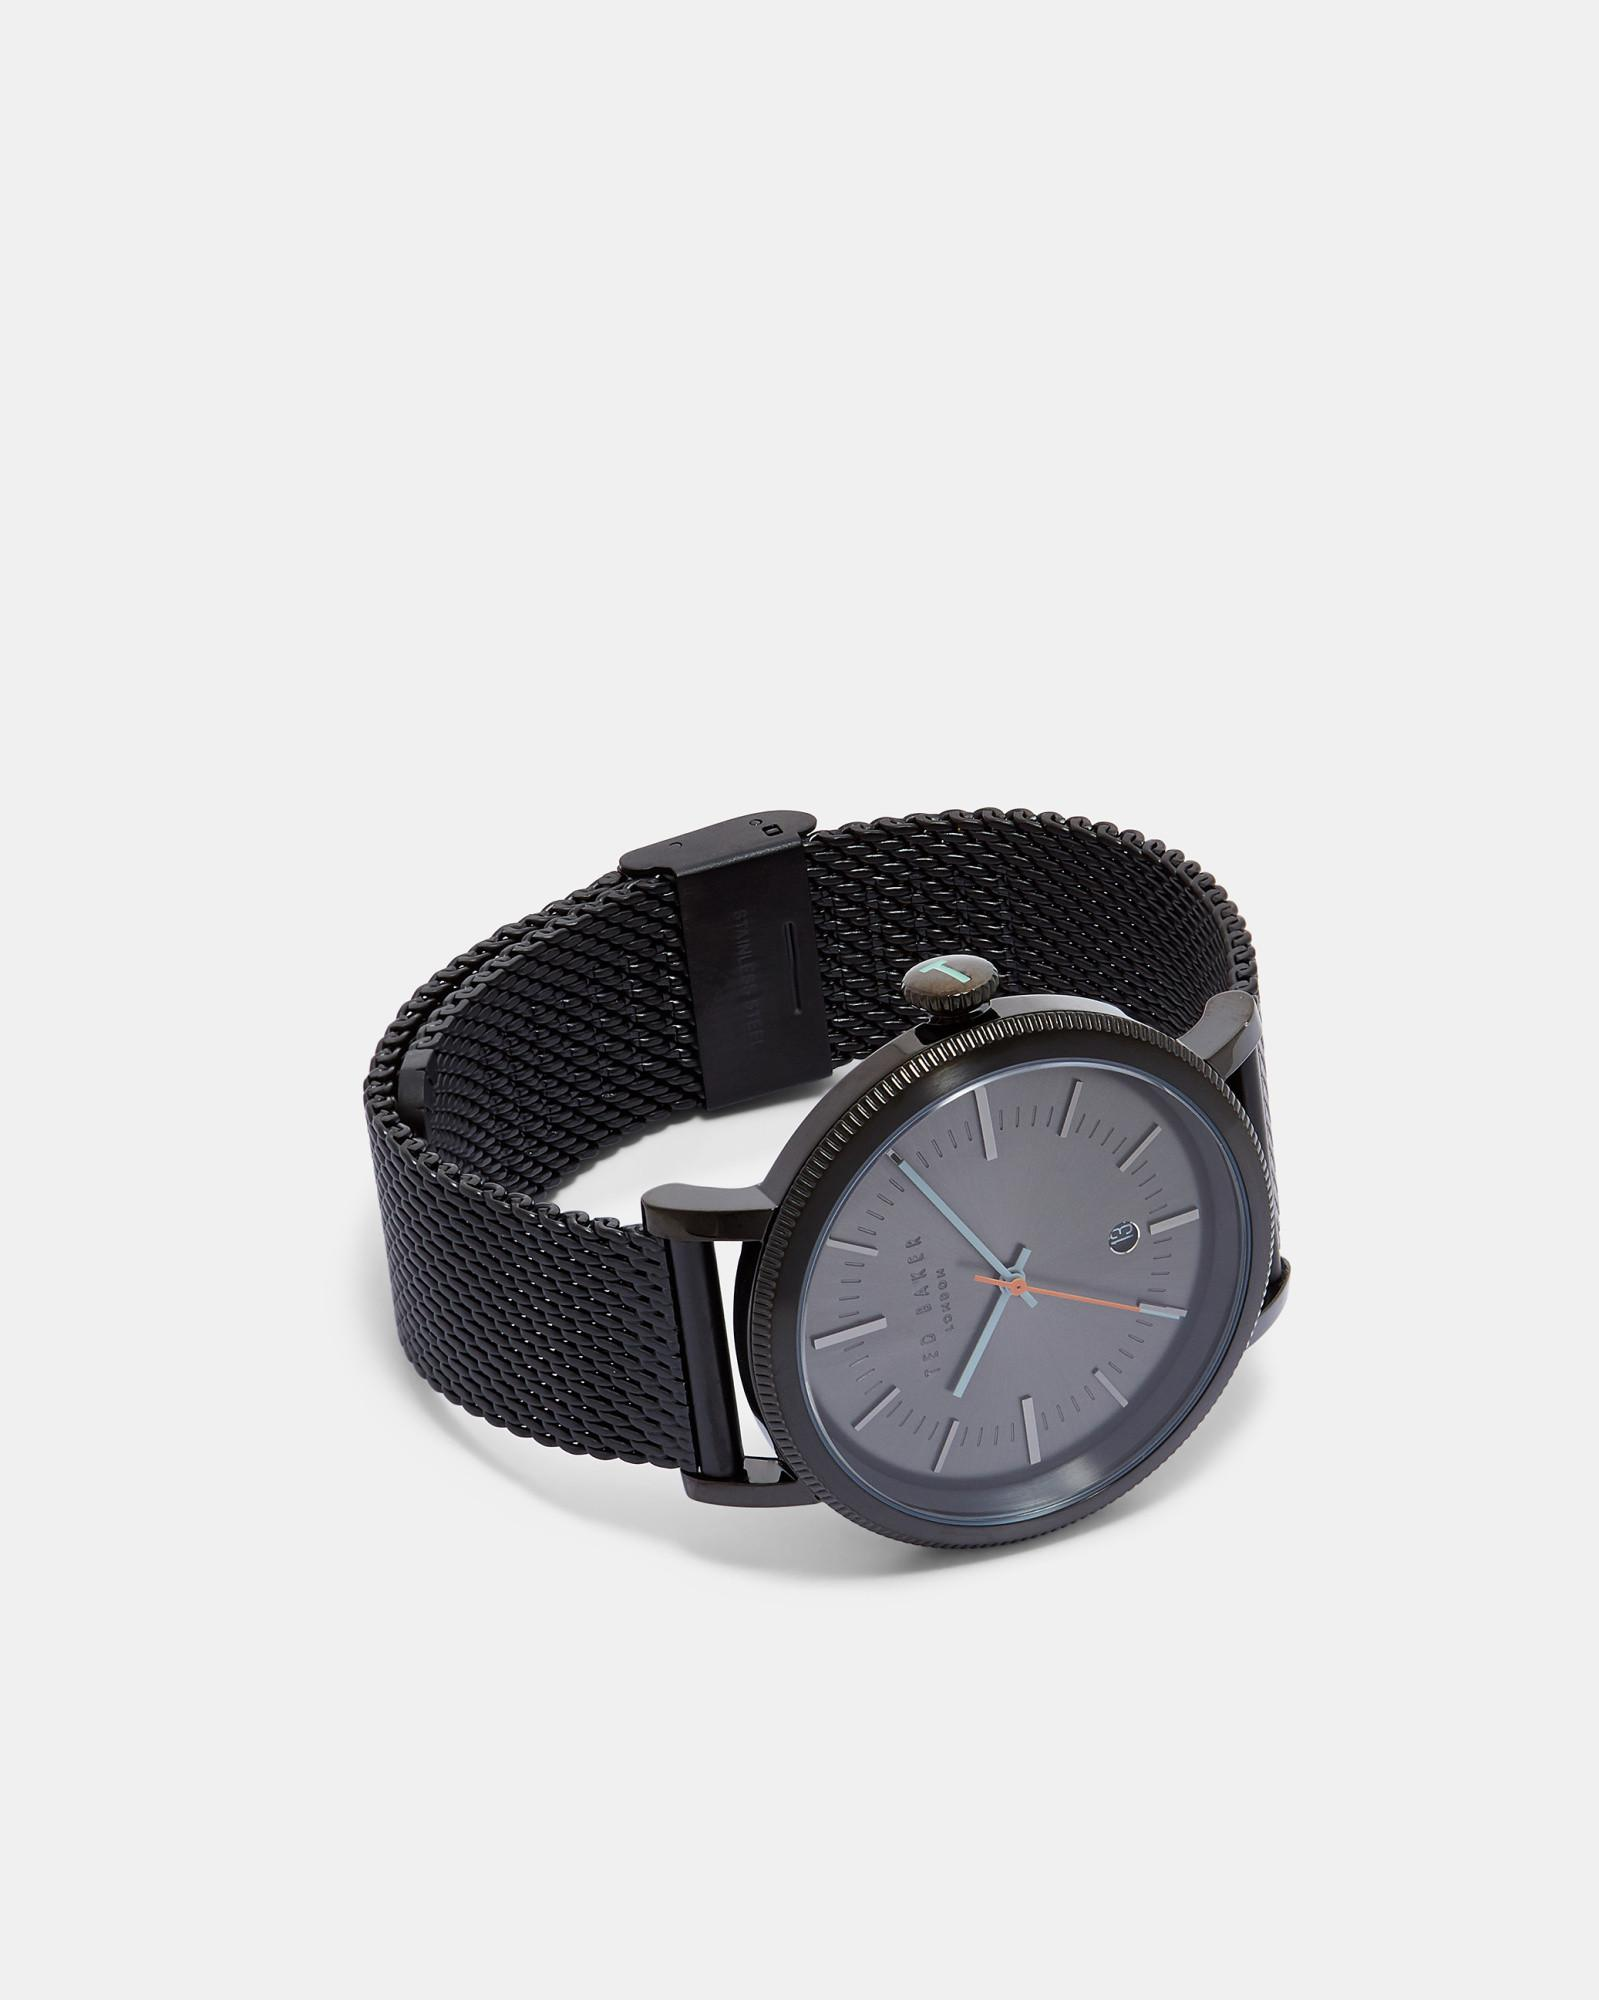 ce0a1cea8b8 Ted Baker Stainless Steel Watch in Black for Men - Lyst